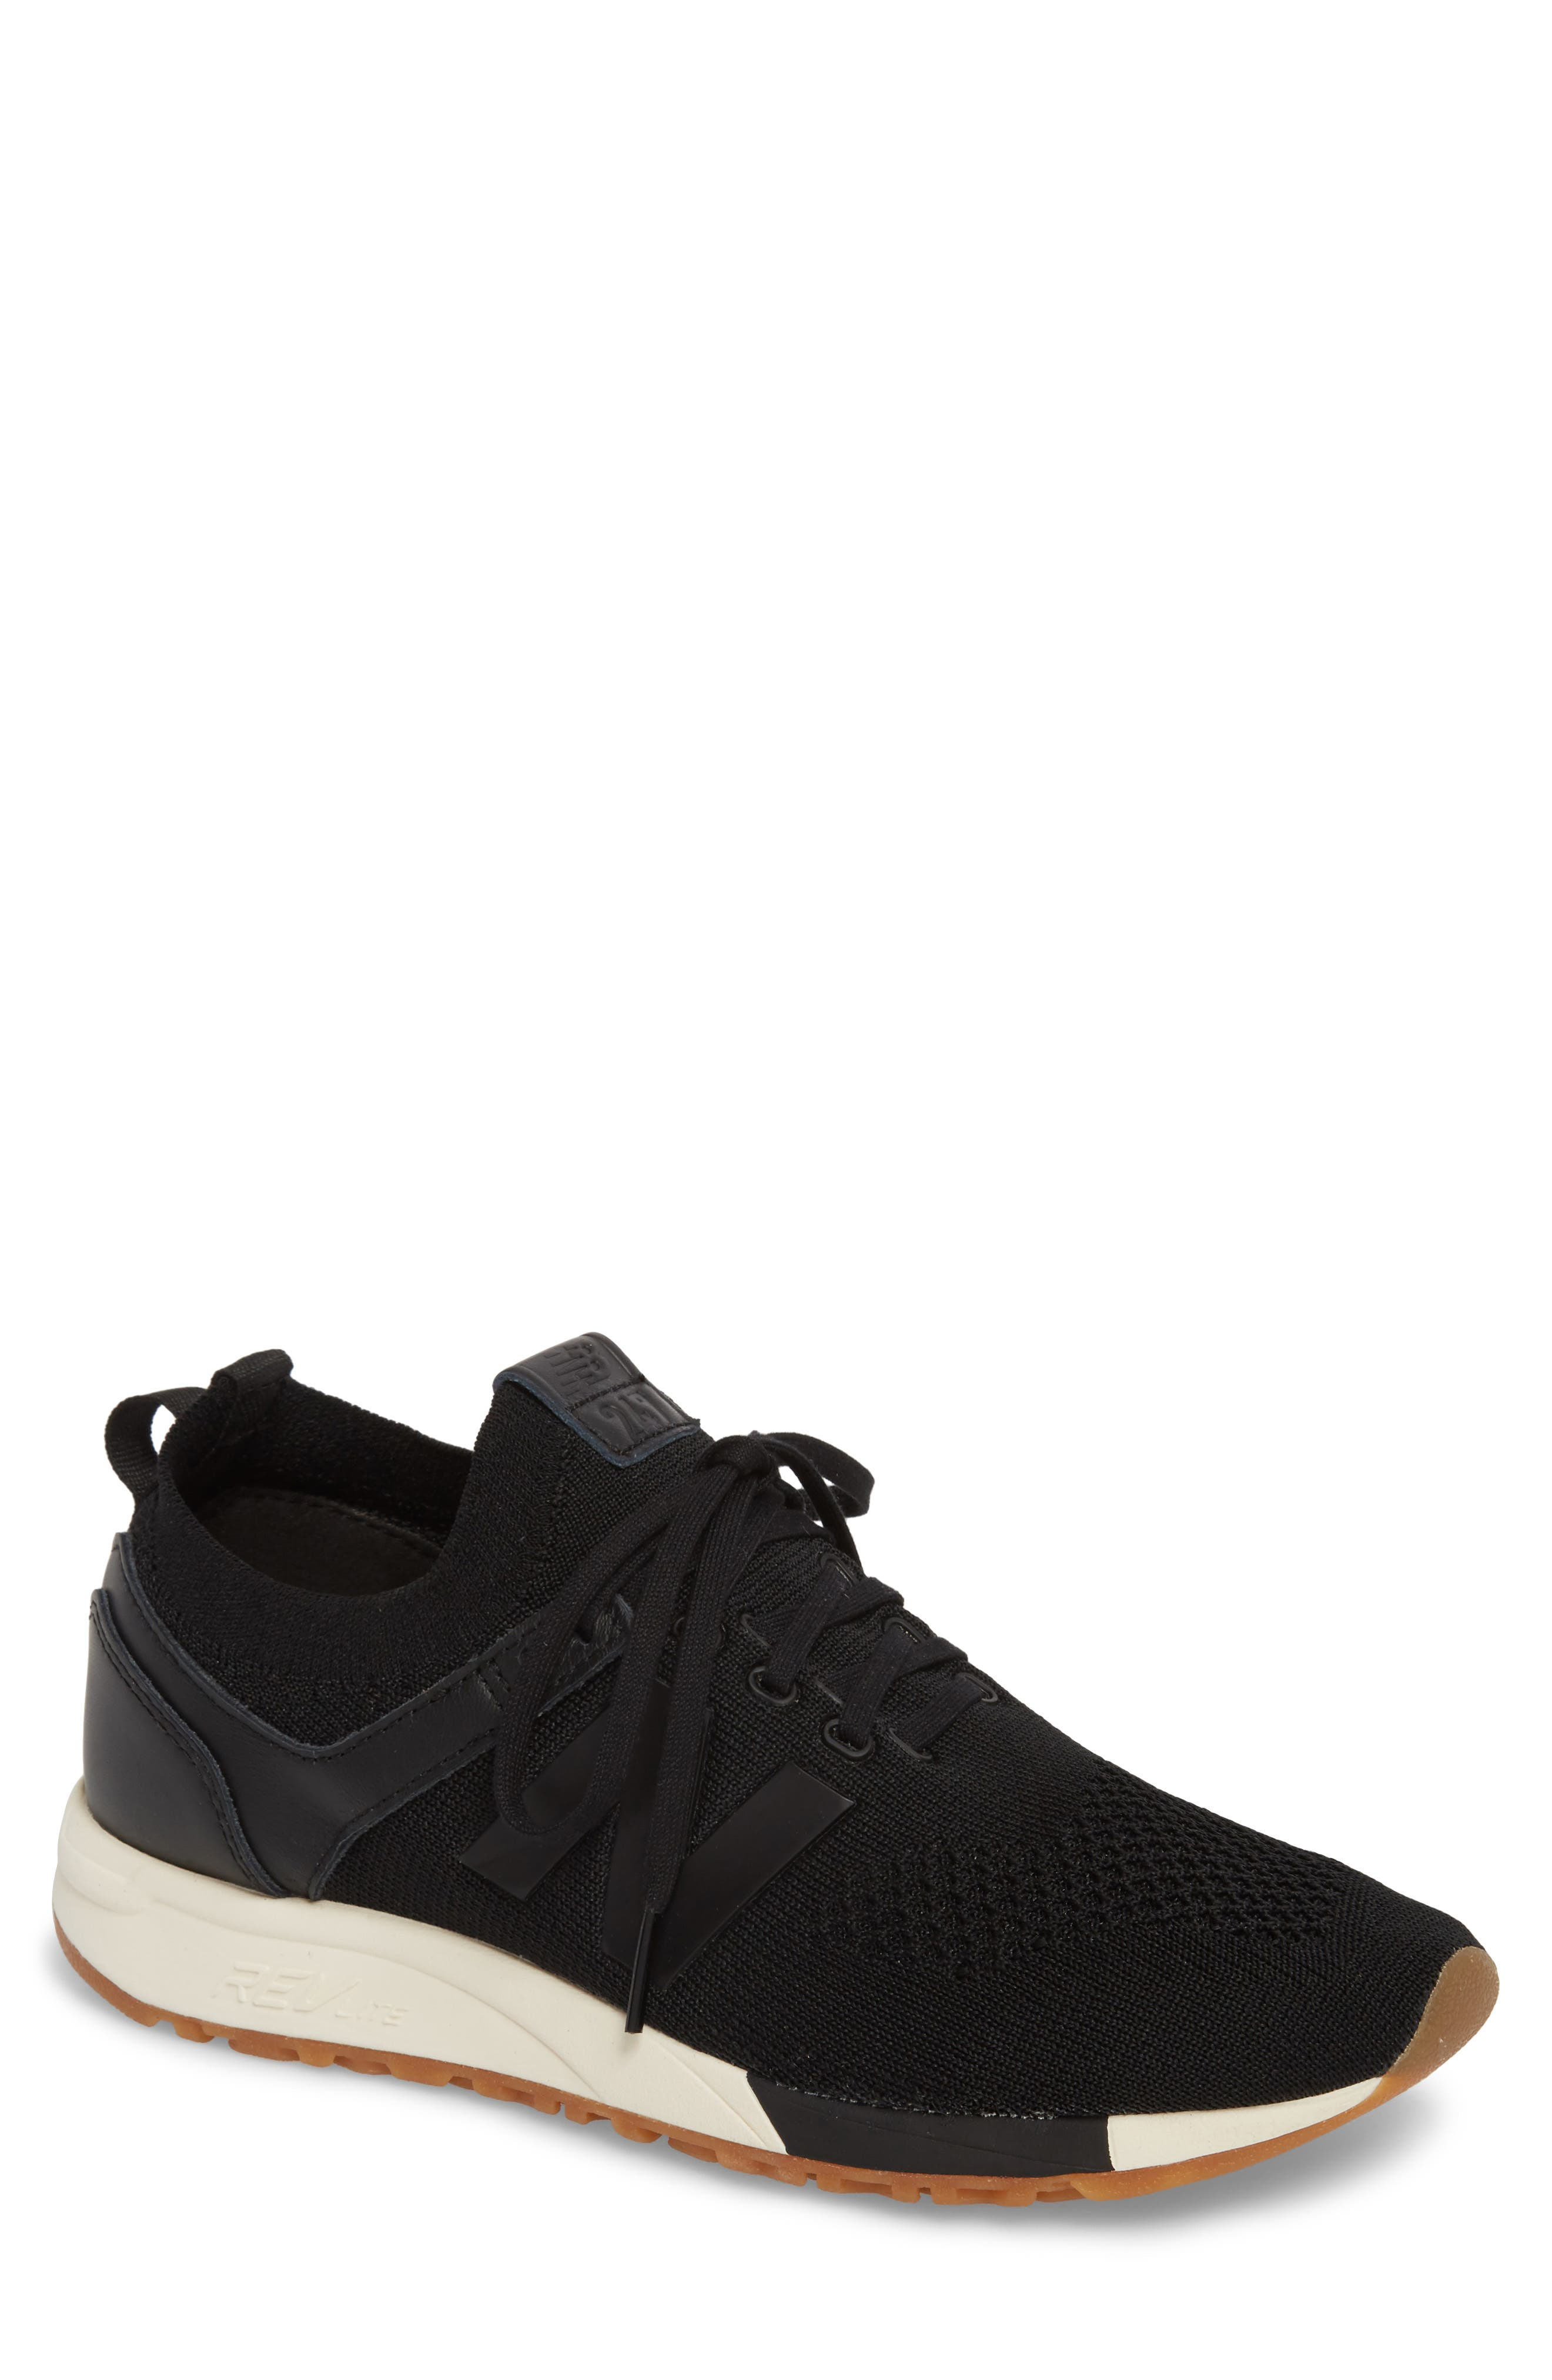 247 Decon Knit Sneaker,                             Main thumbnail 1, color,                             001